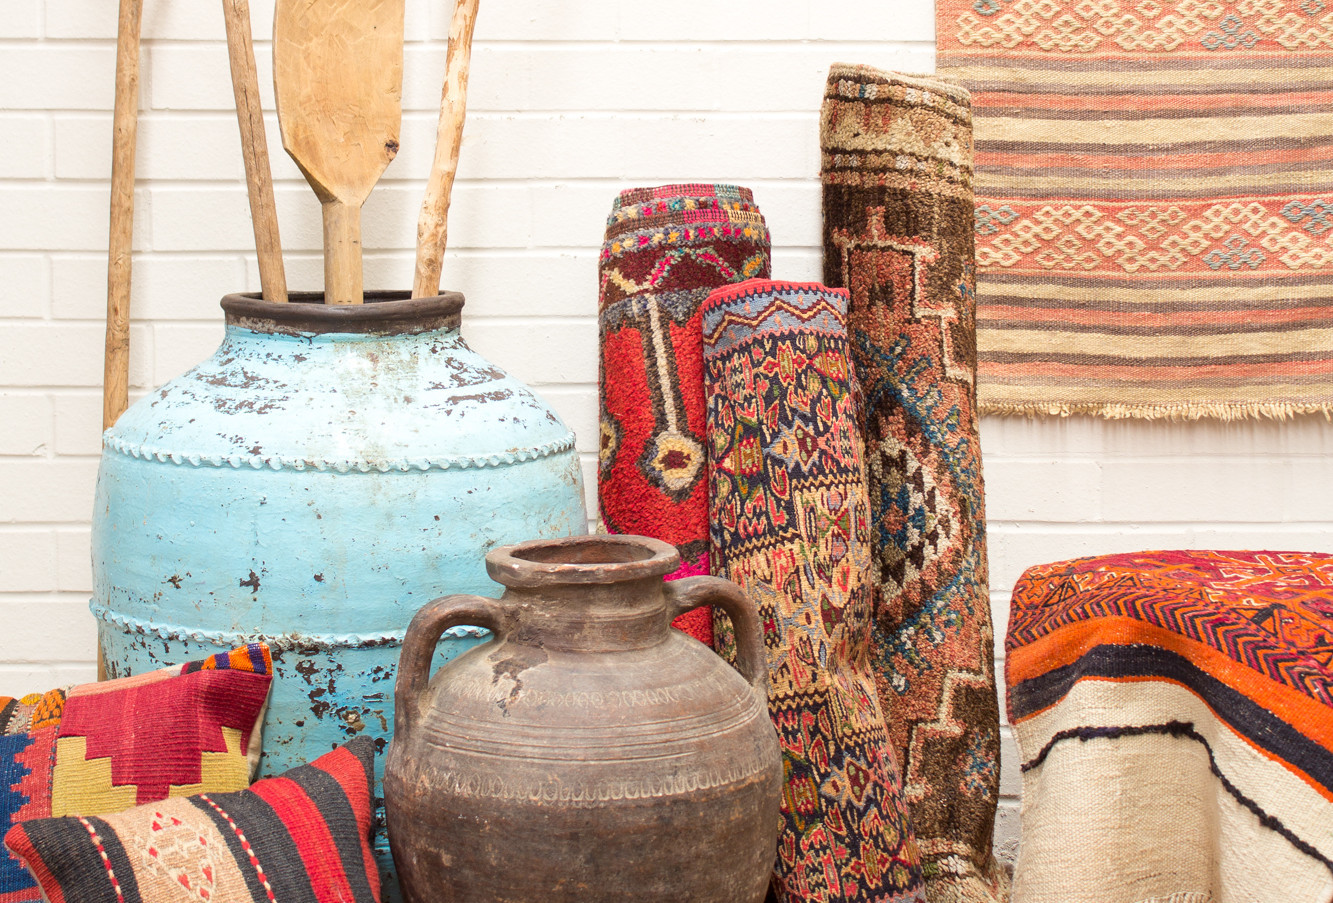 Ottoman Empire and Turkish Rugs and Pots, along with cushions and lovely homewares